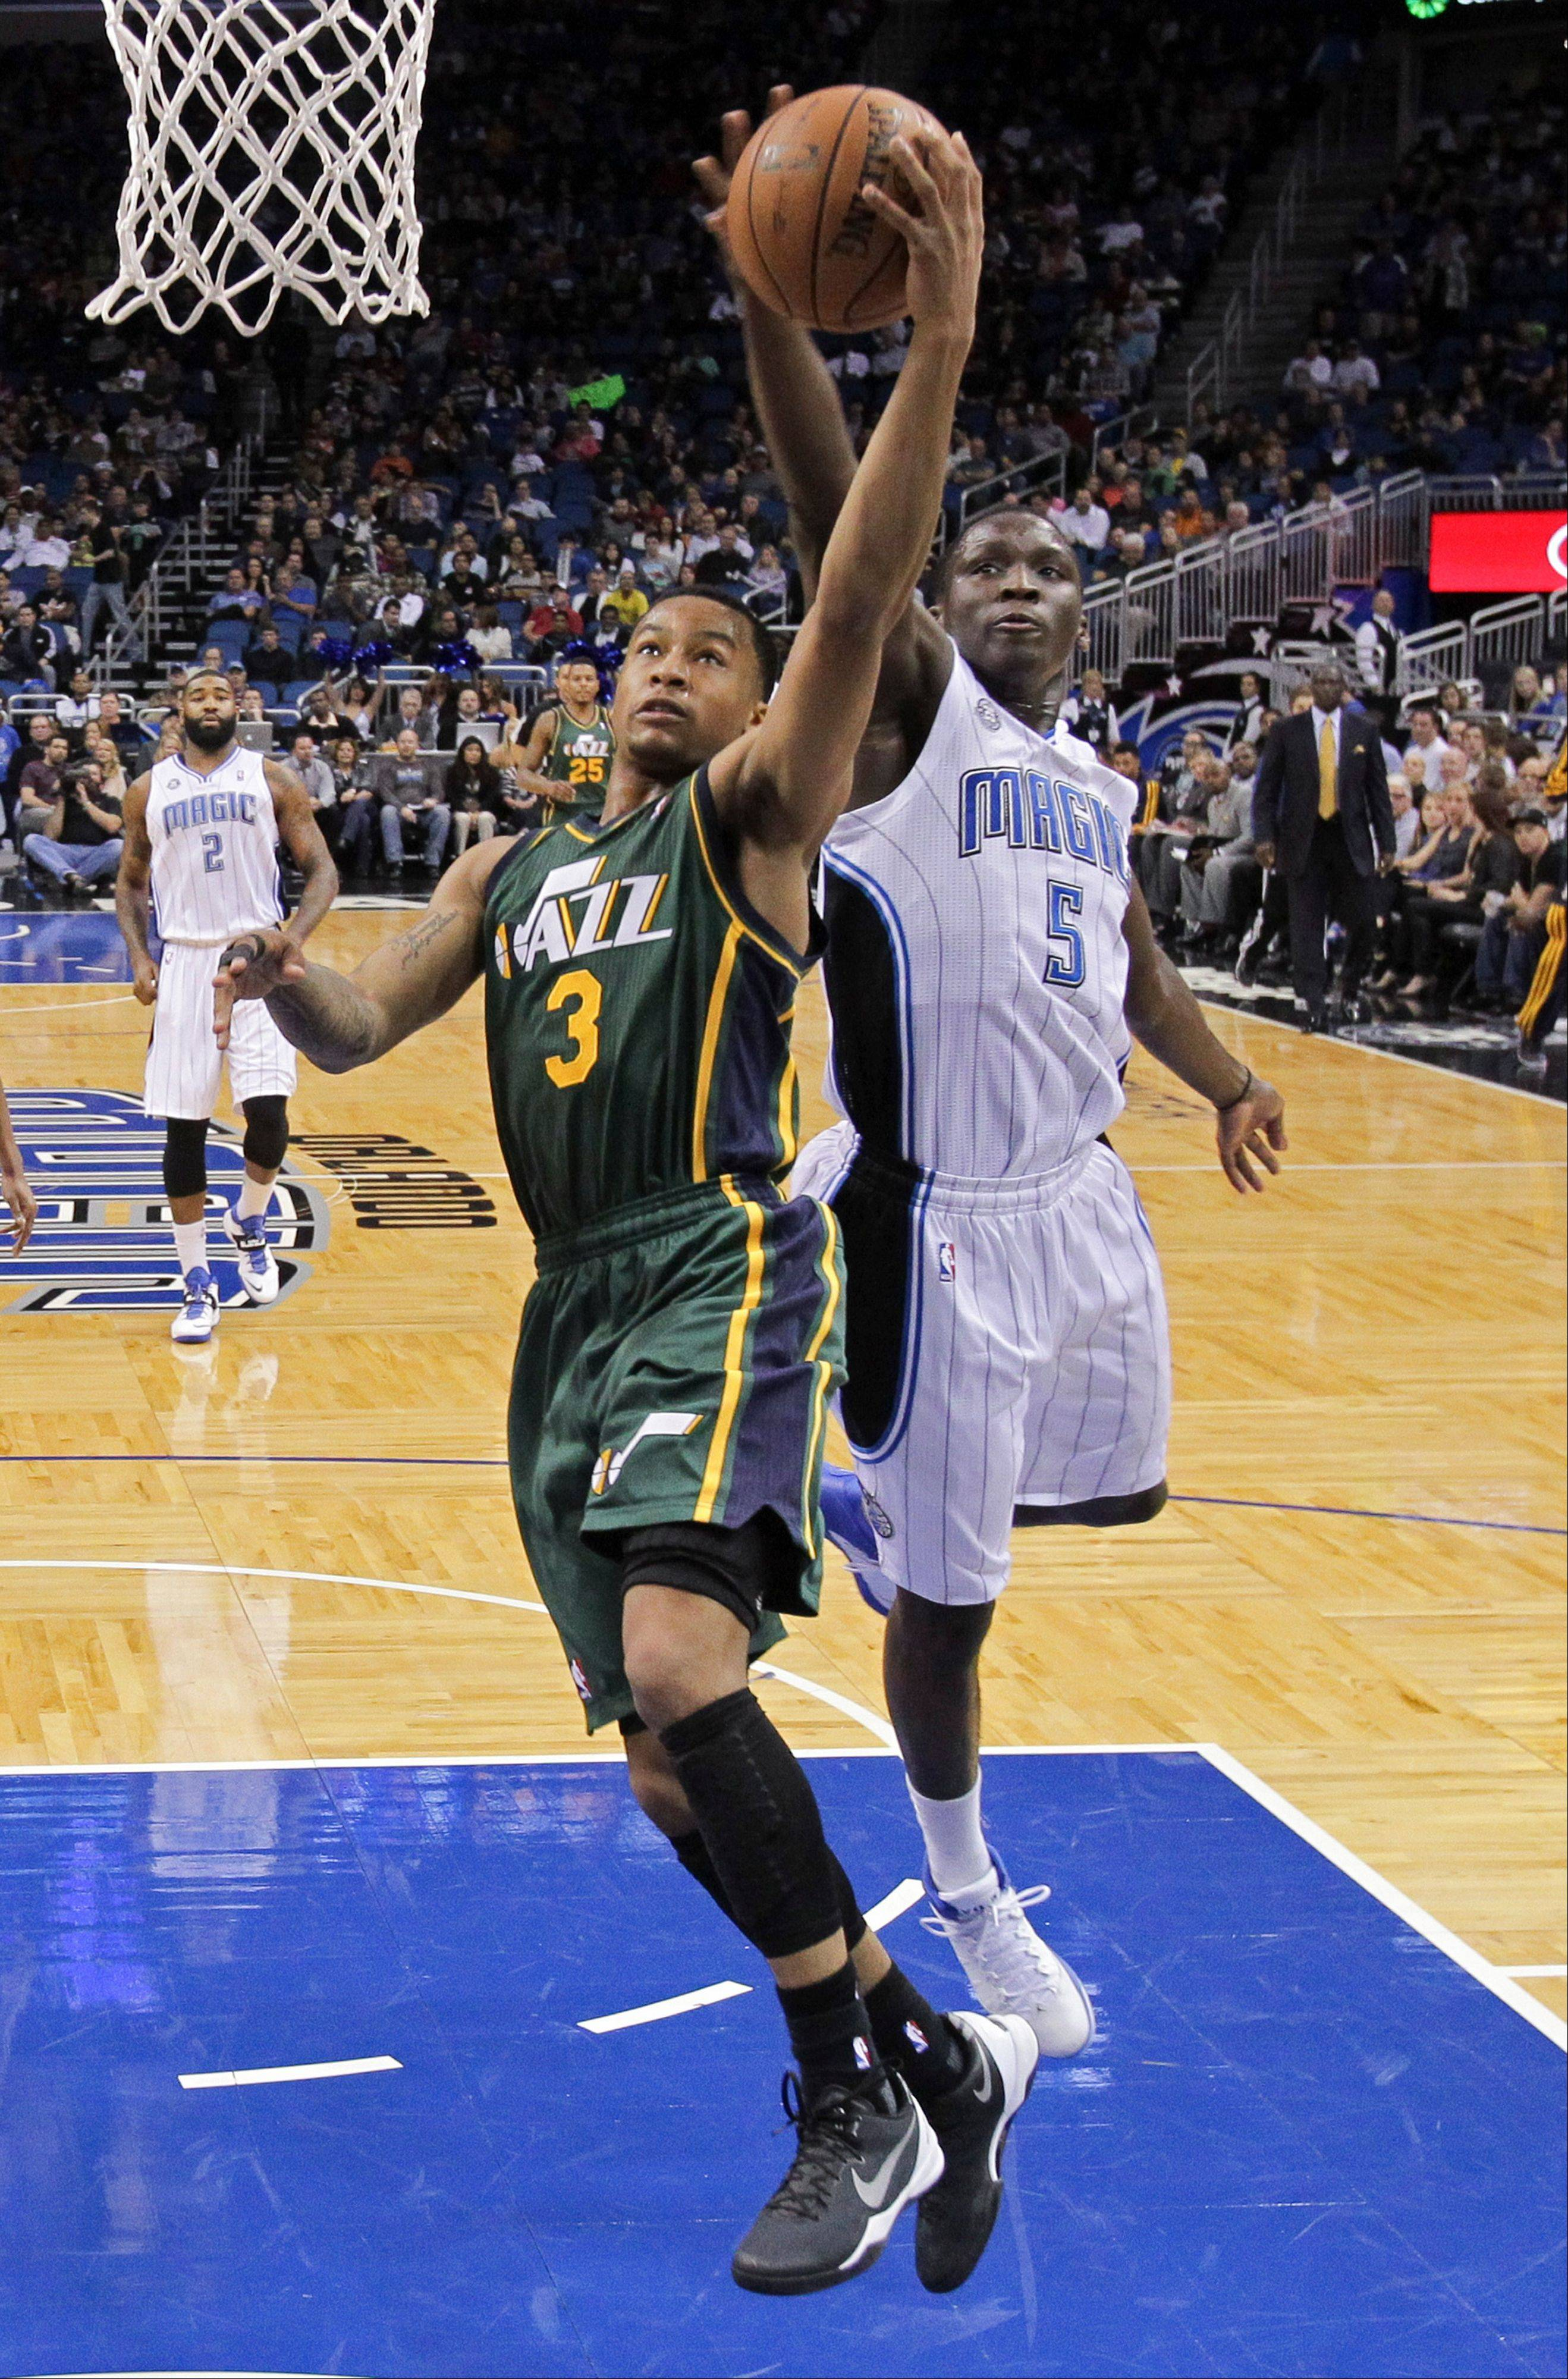 Orlando Magic's Victor Oladipo (5) blocks a shot by Utah Jazz's Trey Burke (3) during the first half of an NBA basketball game Wednesday in Orlando, Fla.